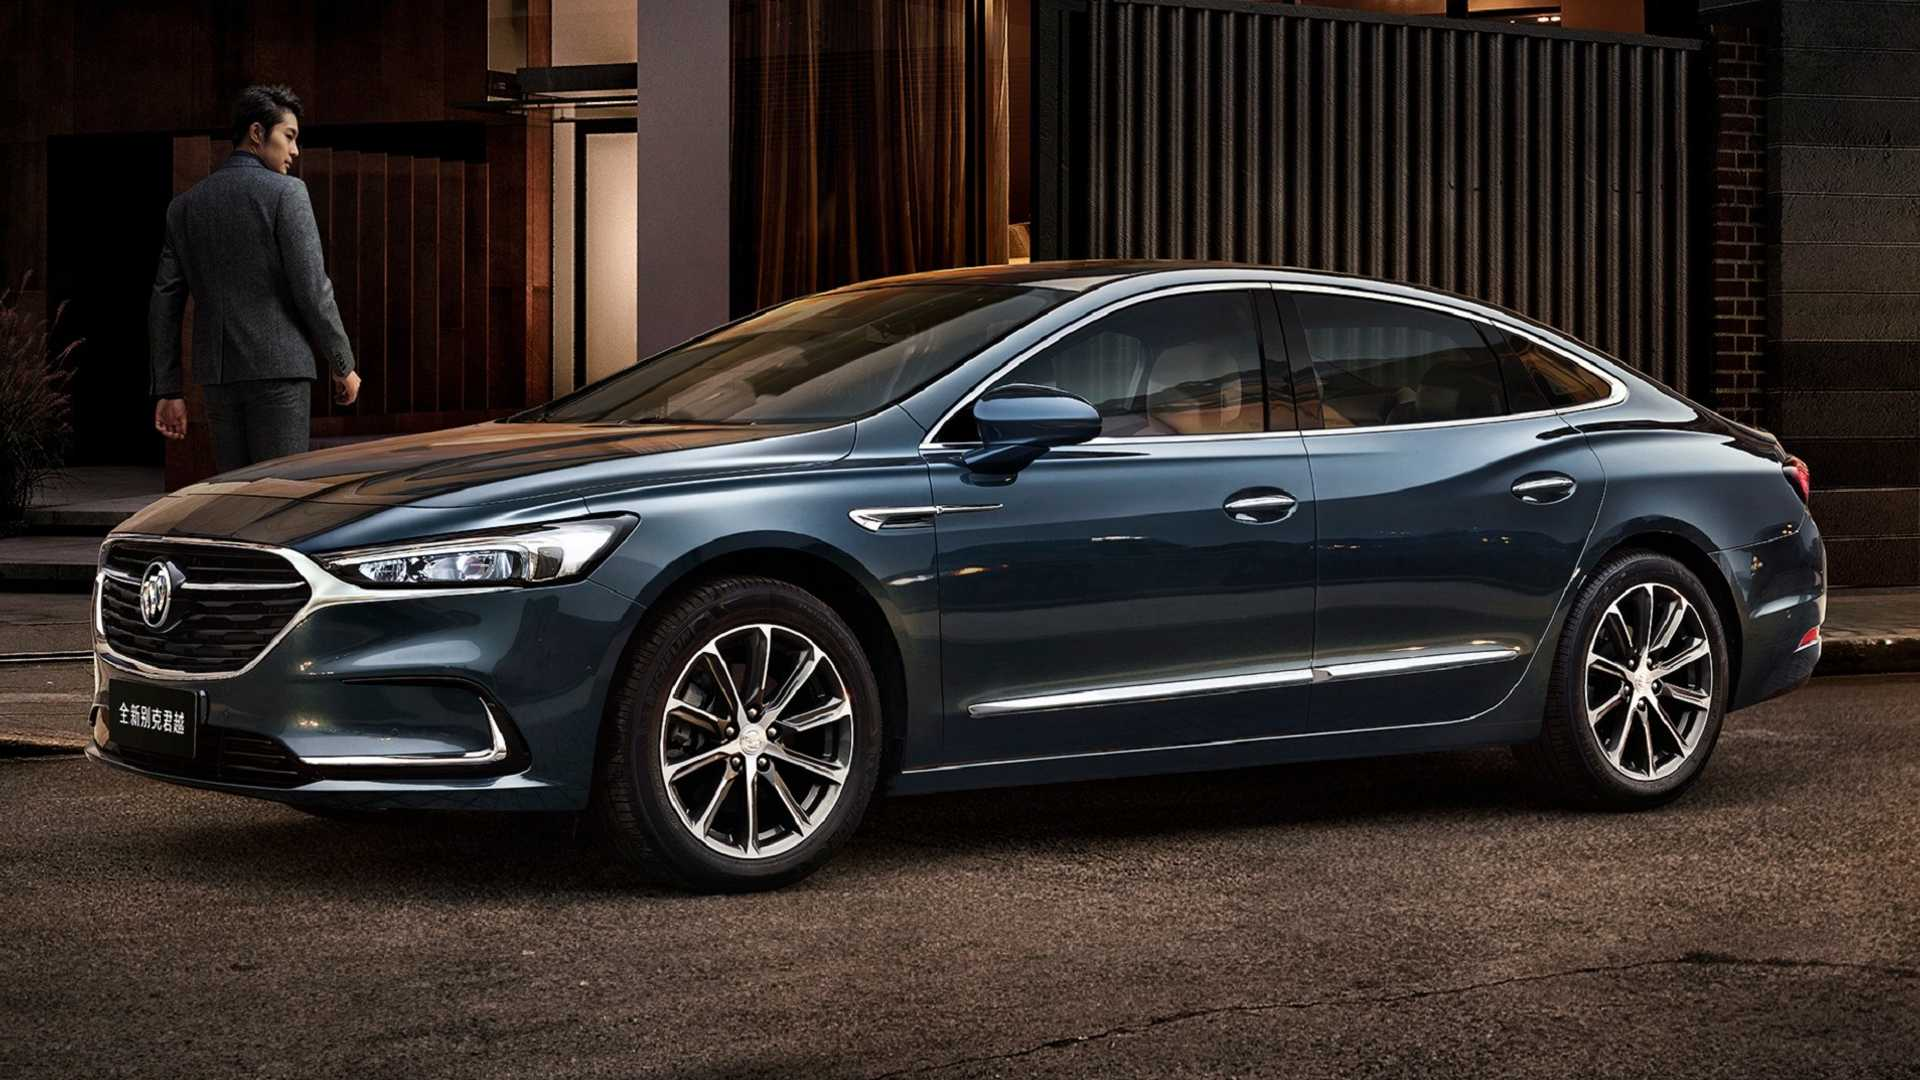 26 Great When Will The 2020 Buick Lacrosse Be Released Pictures by When Will The 2020 Buick Lacrosse Be Released